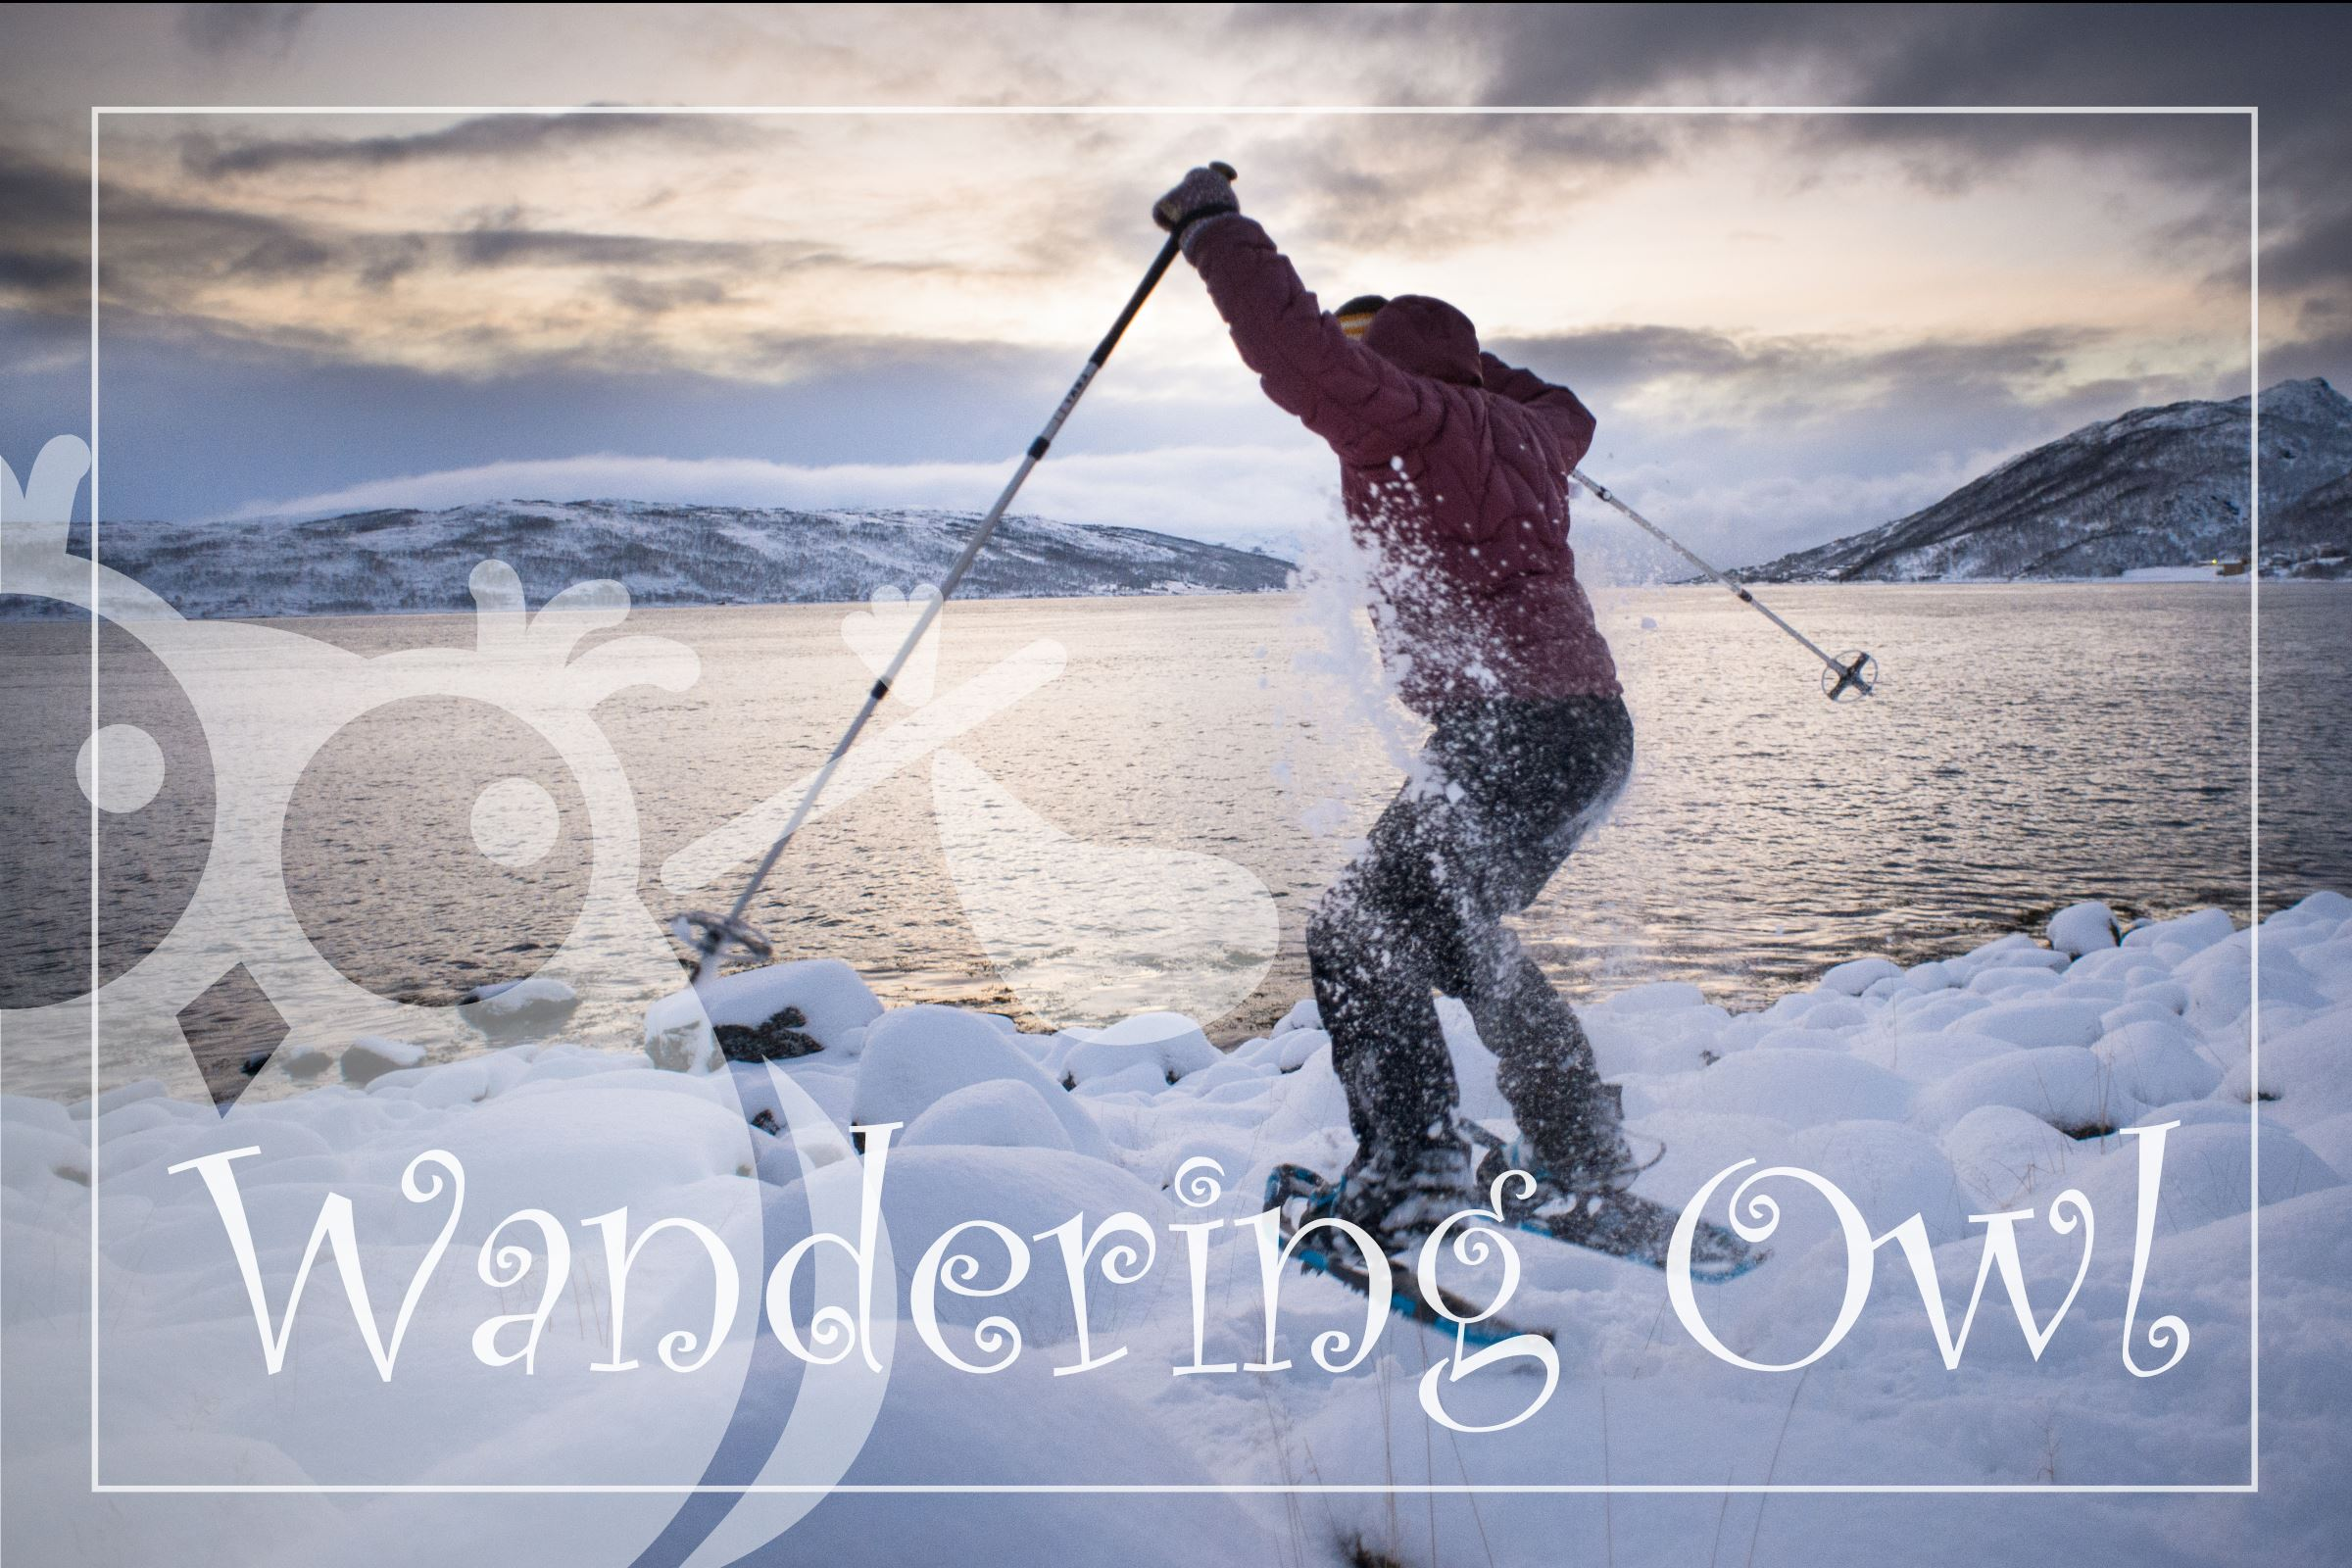 Take a Walk on the Wild Side – Snowshoeing Tour – Wandering Owl